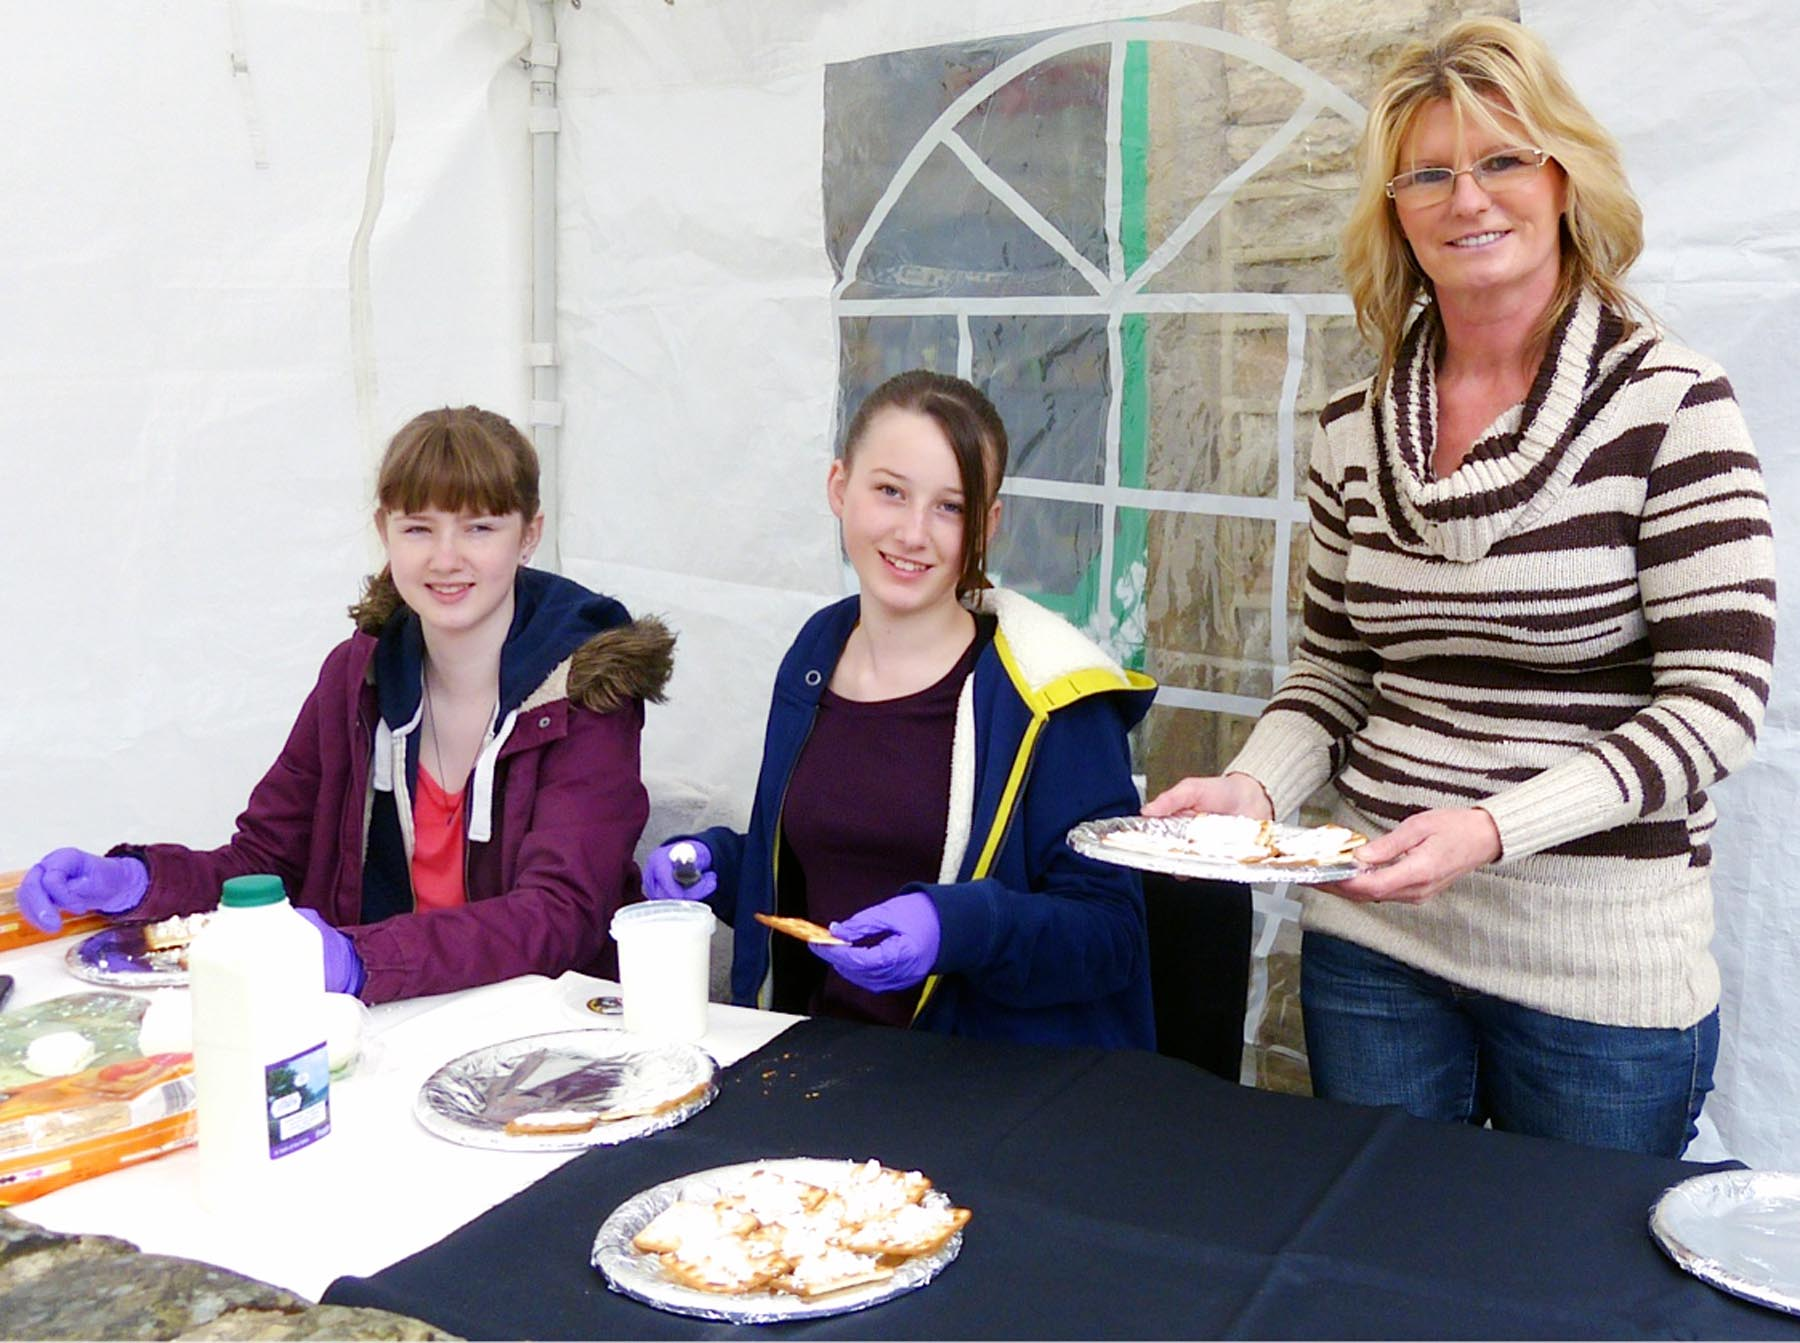 Caitlin Depledge and Georgia Parker, both 13, handing out samples of Yellison Goats Cheese with Sandra Waite, of Bradley Village Shop